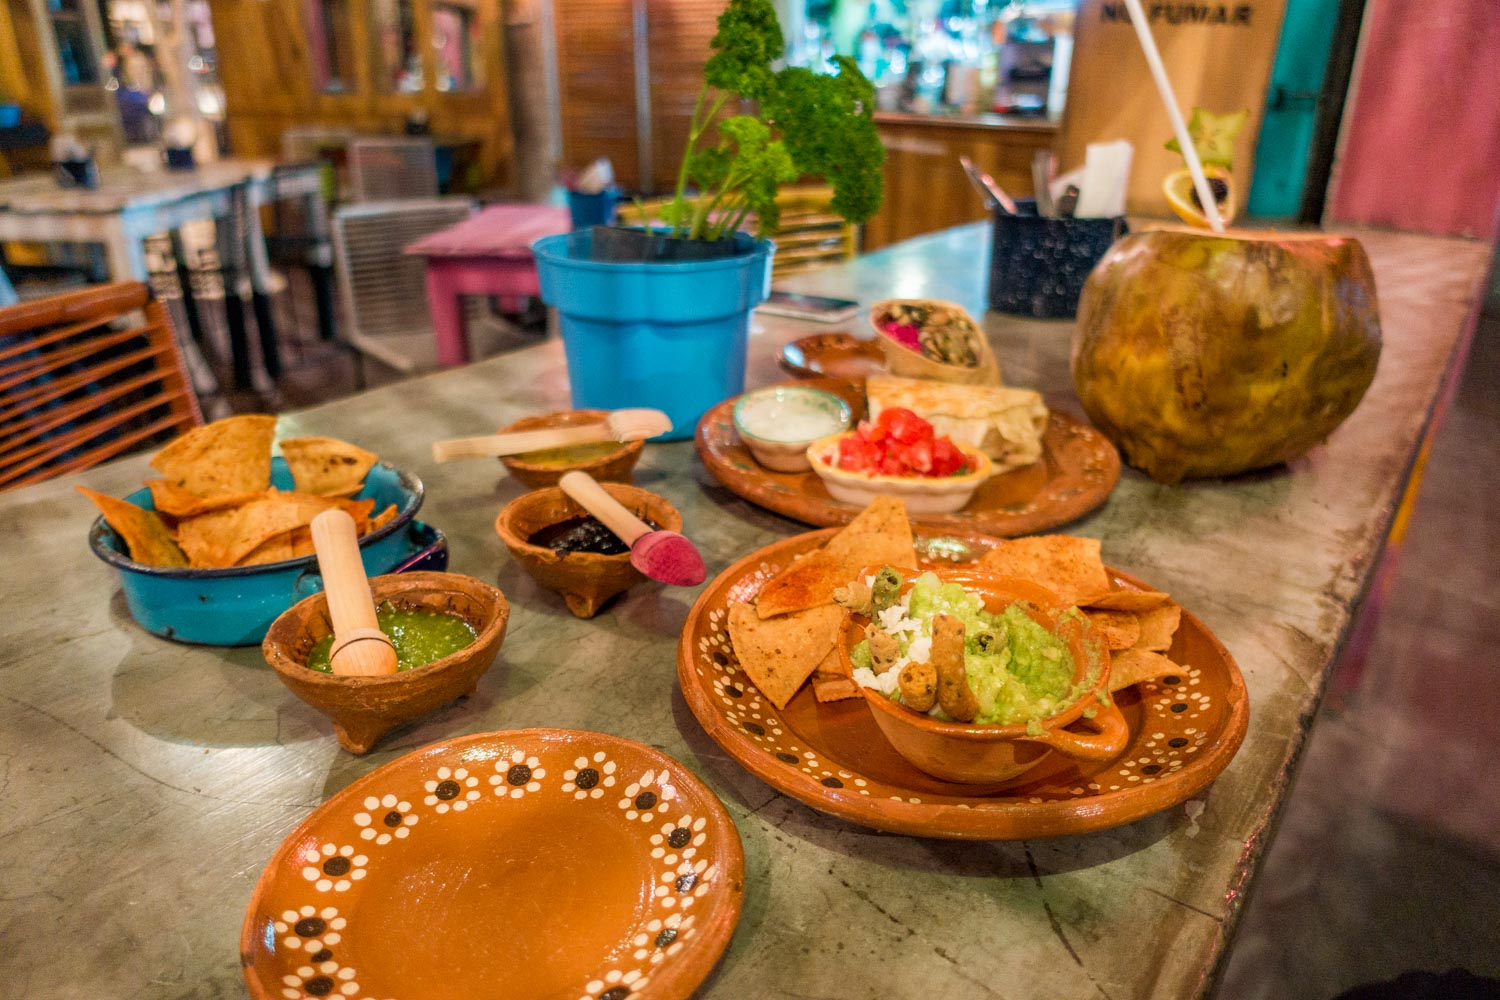 3.)Mexico - You'll enjoy countless tostada and taco options. My recommendation ask for pina (pineapple) on everything and make sure you try nopal (cactus).